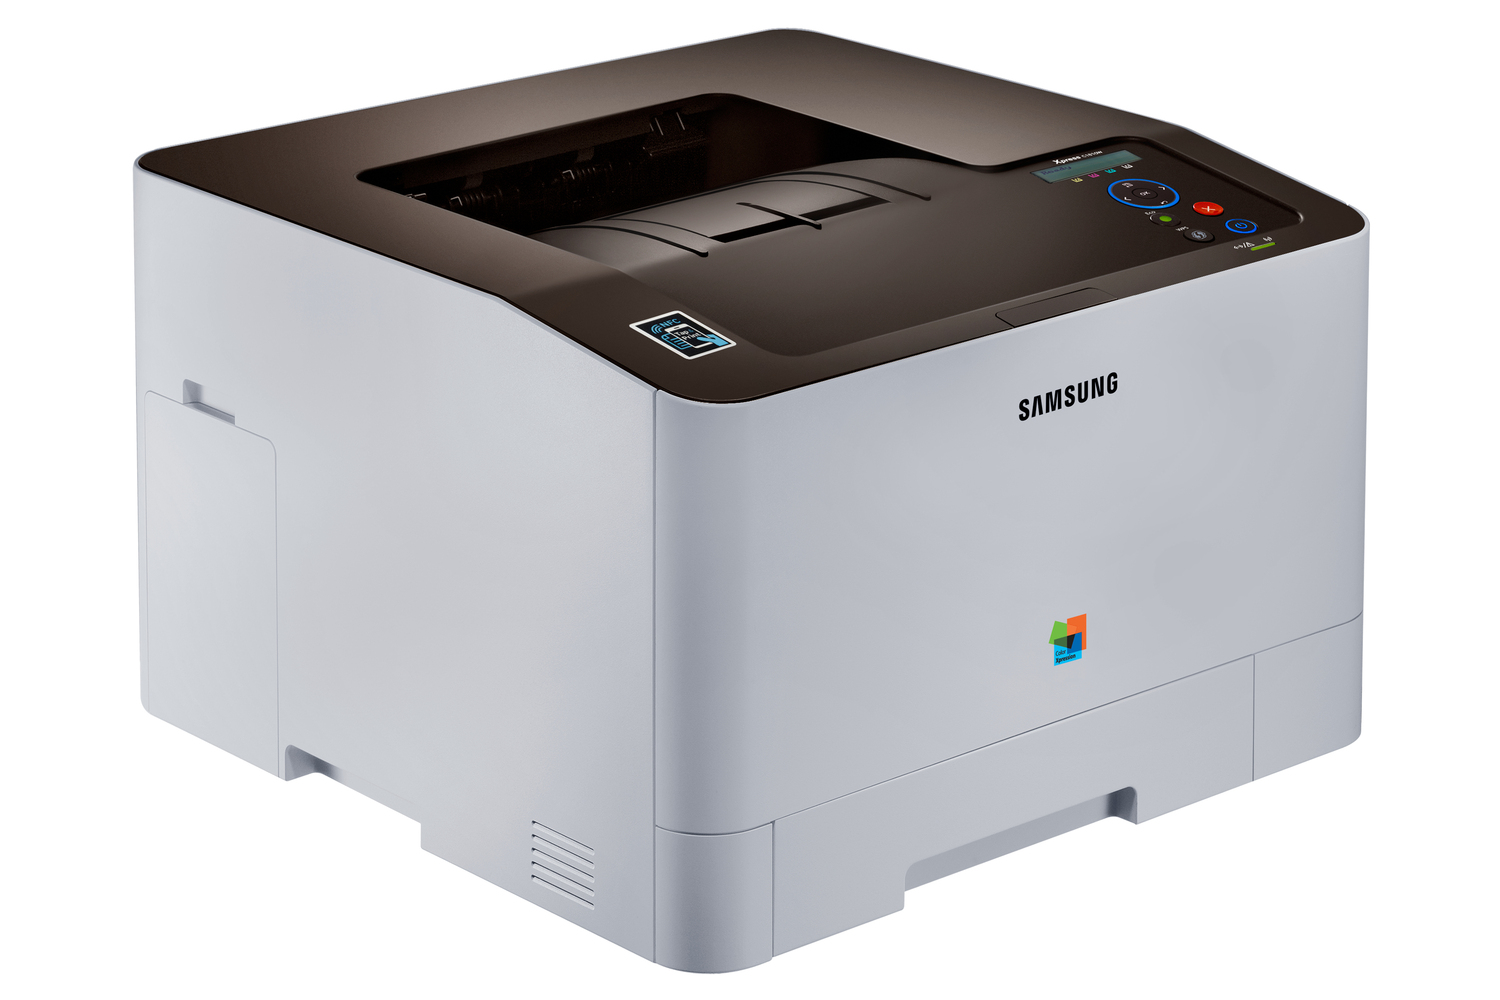 best laser printer for wedding invitations office depot wedding invitations Office Depot Weddinginvitations mogulus net The Foil Factory 3 Tips For Using Your Minc Applicator